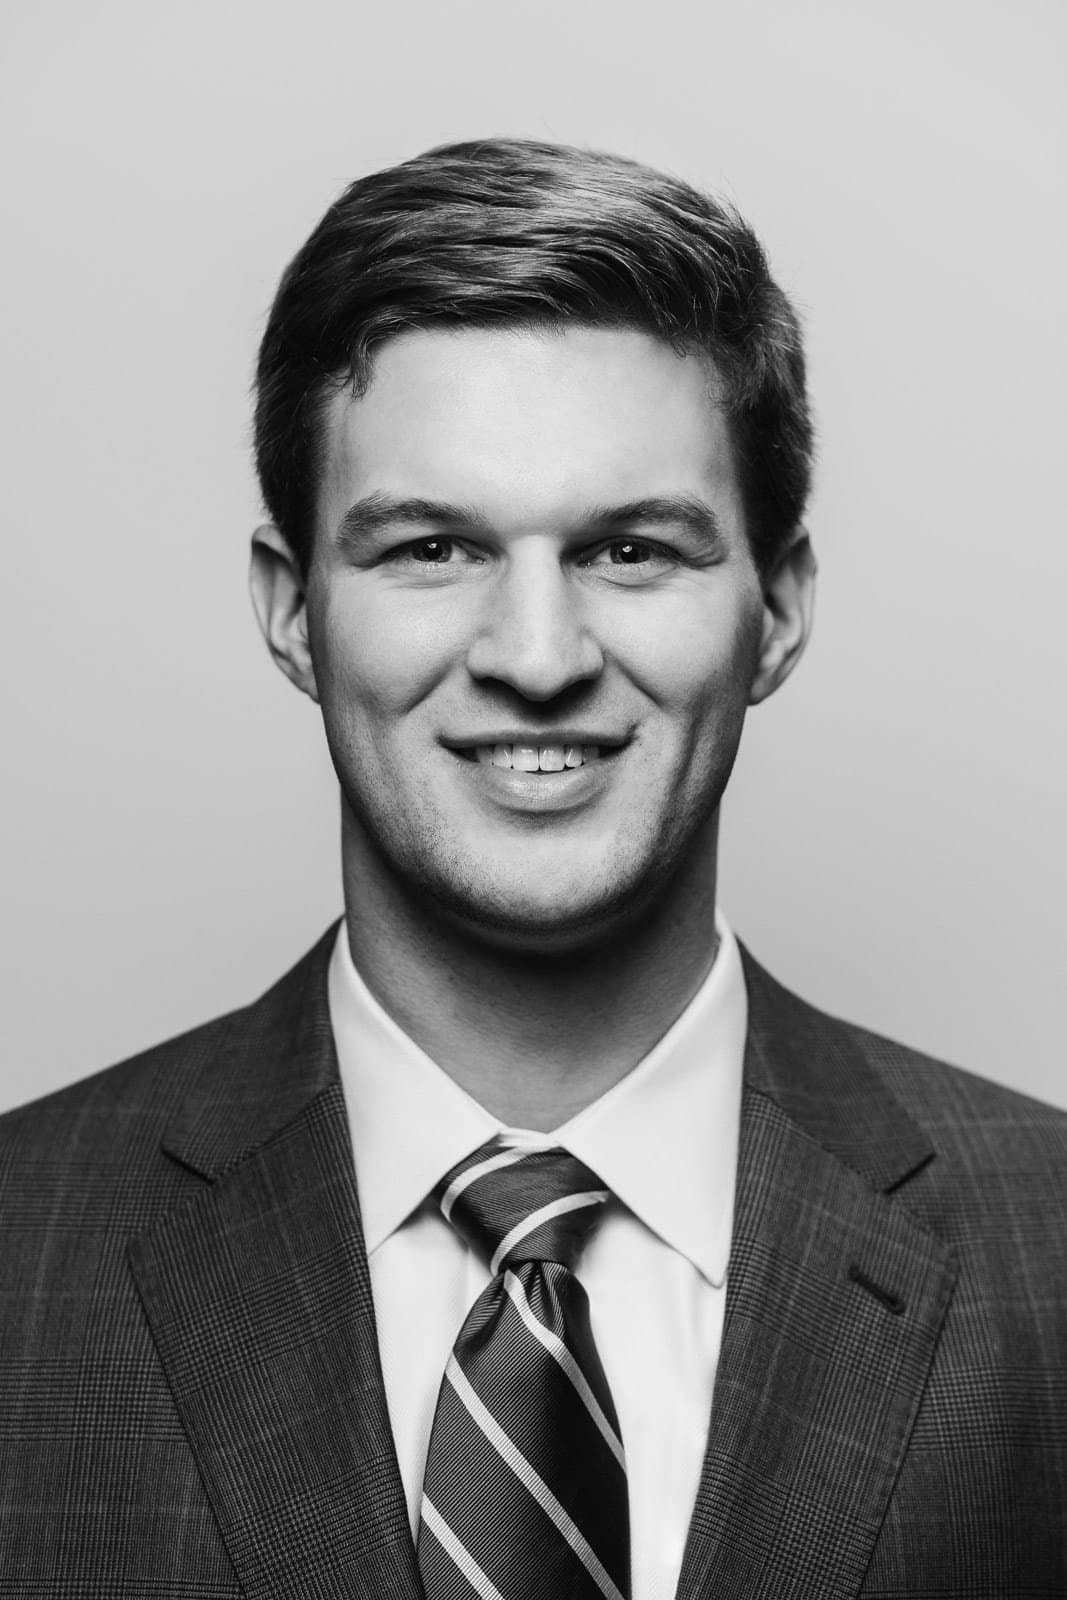 professional atlanta corporate headshot